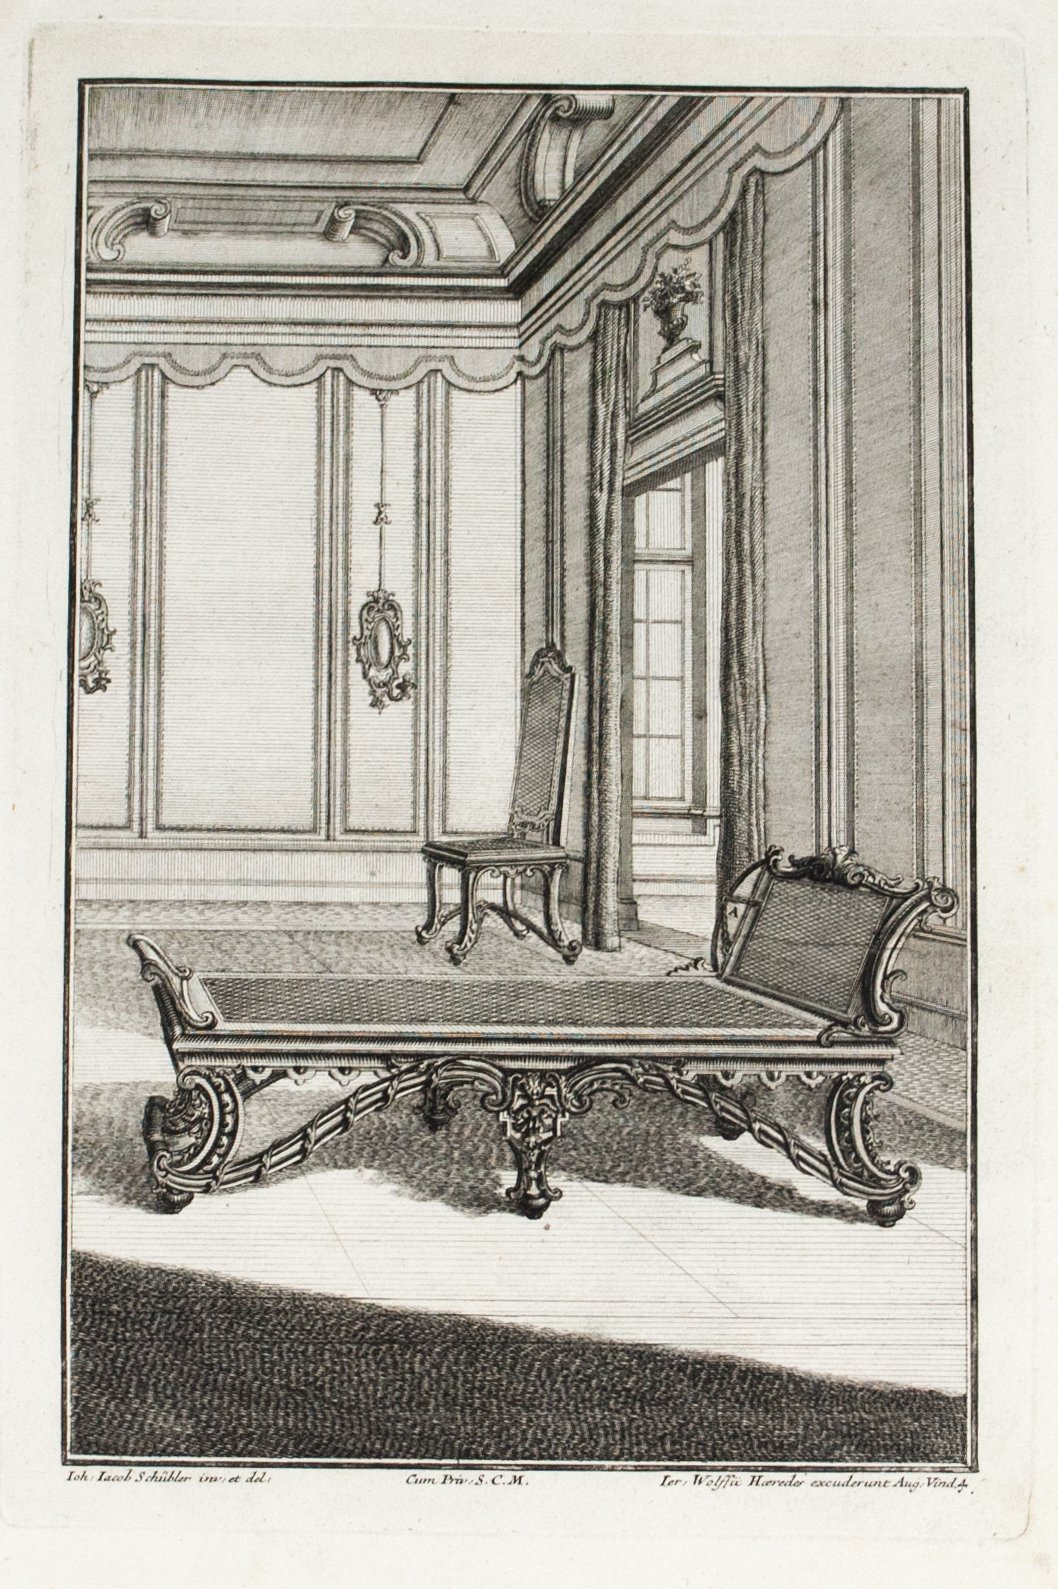 1735 Plate 4 - Daybed - Schublers